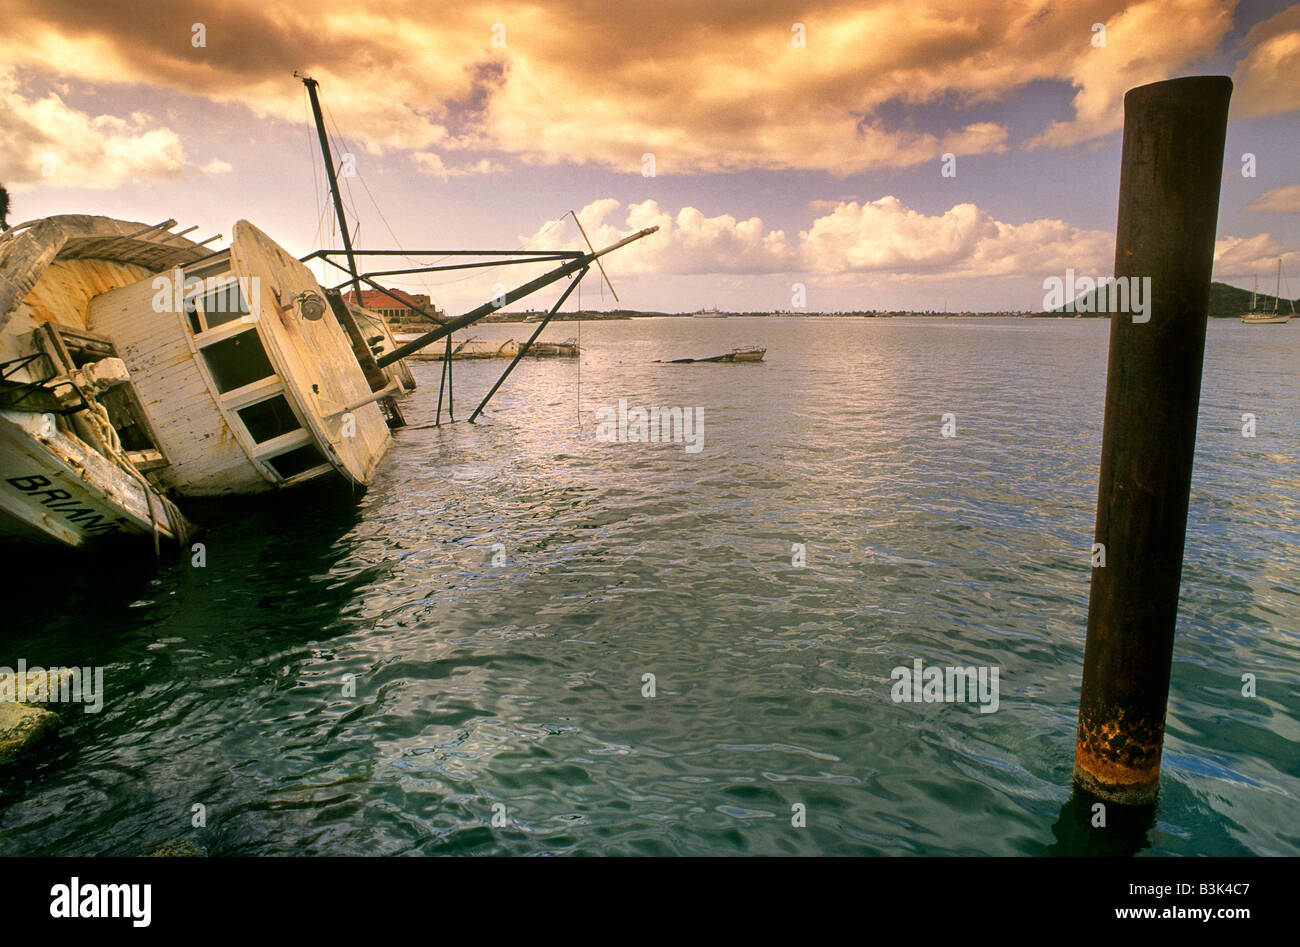 Shipwrecks after a hurricane in the Caribbean - Stock Image